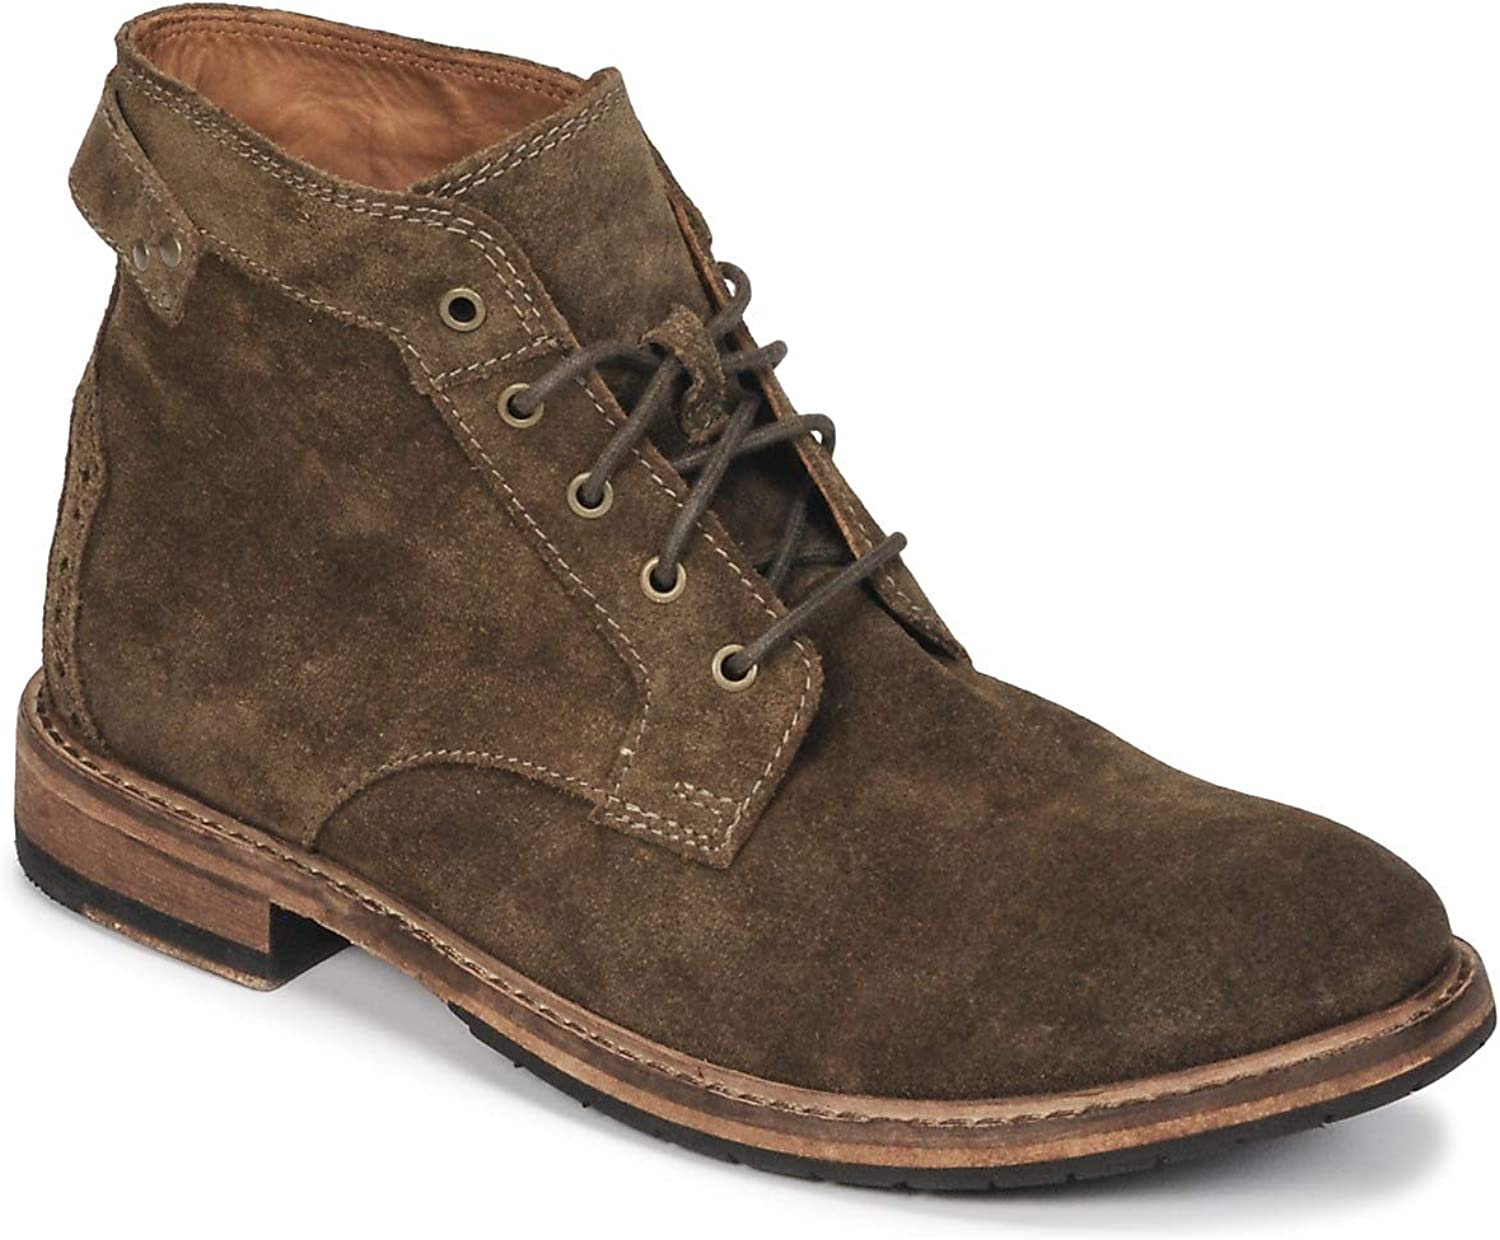 Clarks Mens Clarkdale Bud Khaki Suede Premium Leather G Fit Boots